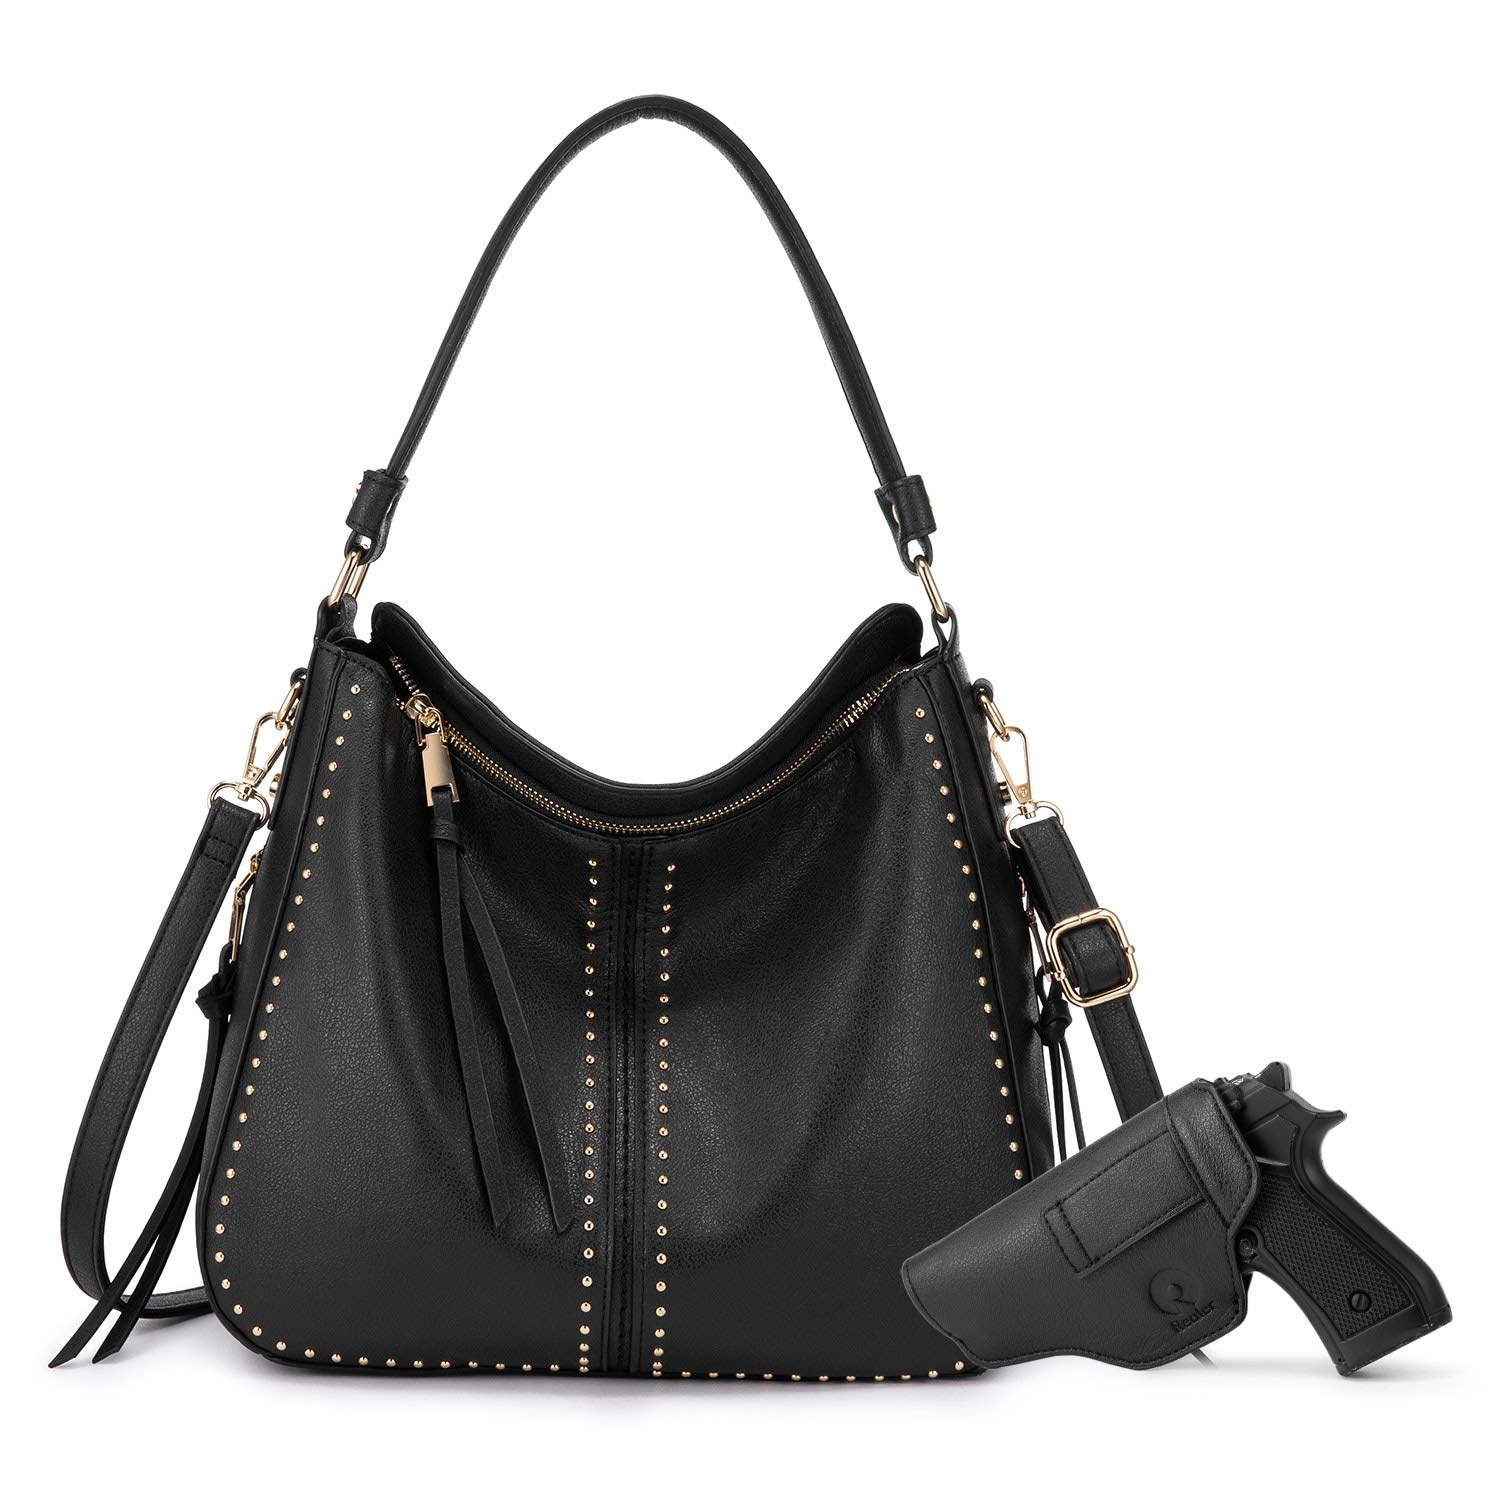 Hobo Handbags Concealed Carry Purse Women Crossbody Shoulder Bag Tote Bag with Faux Leather Holster